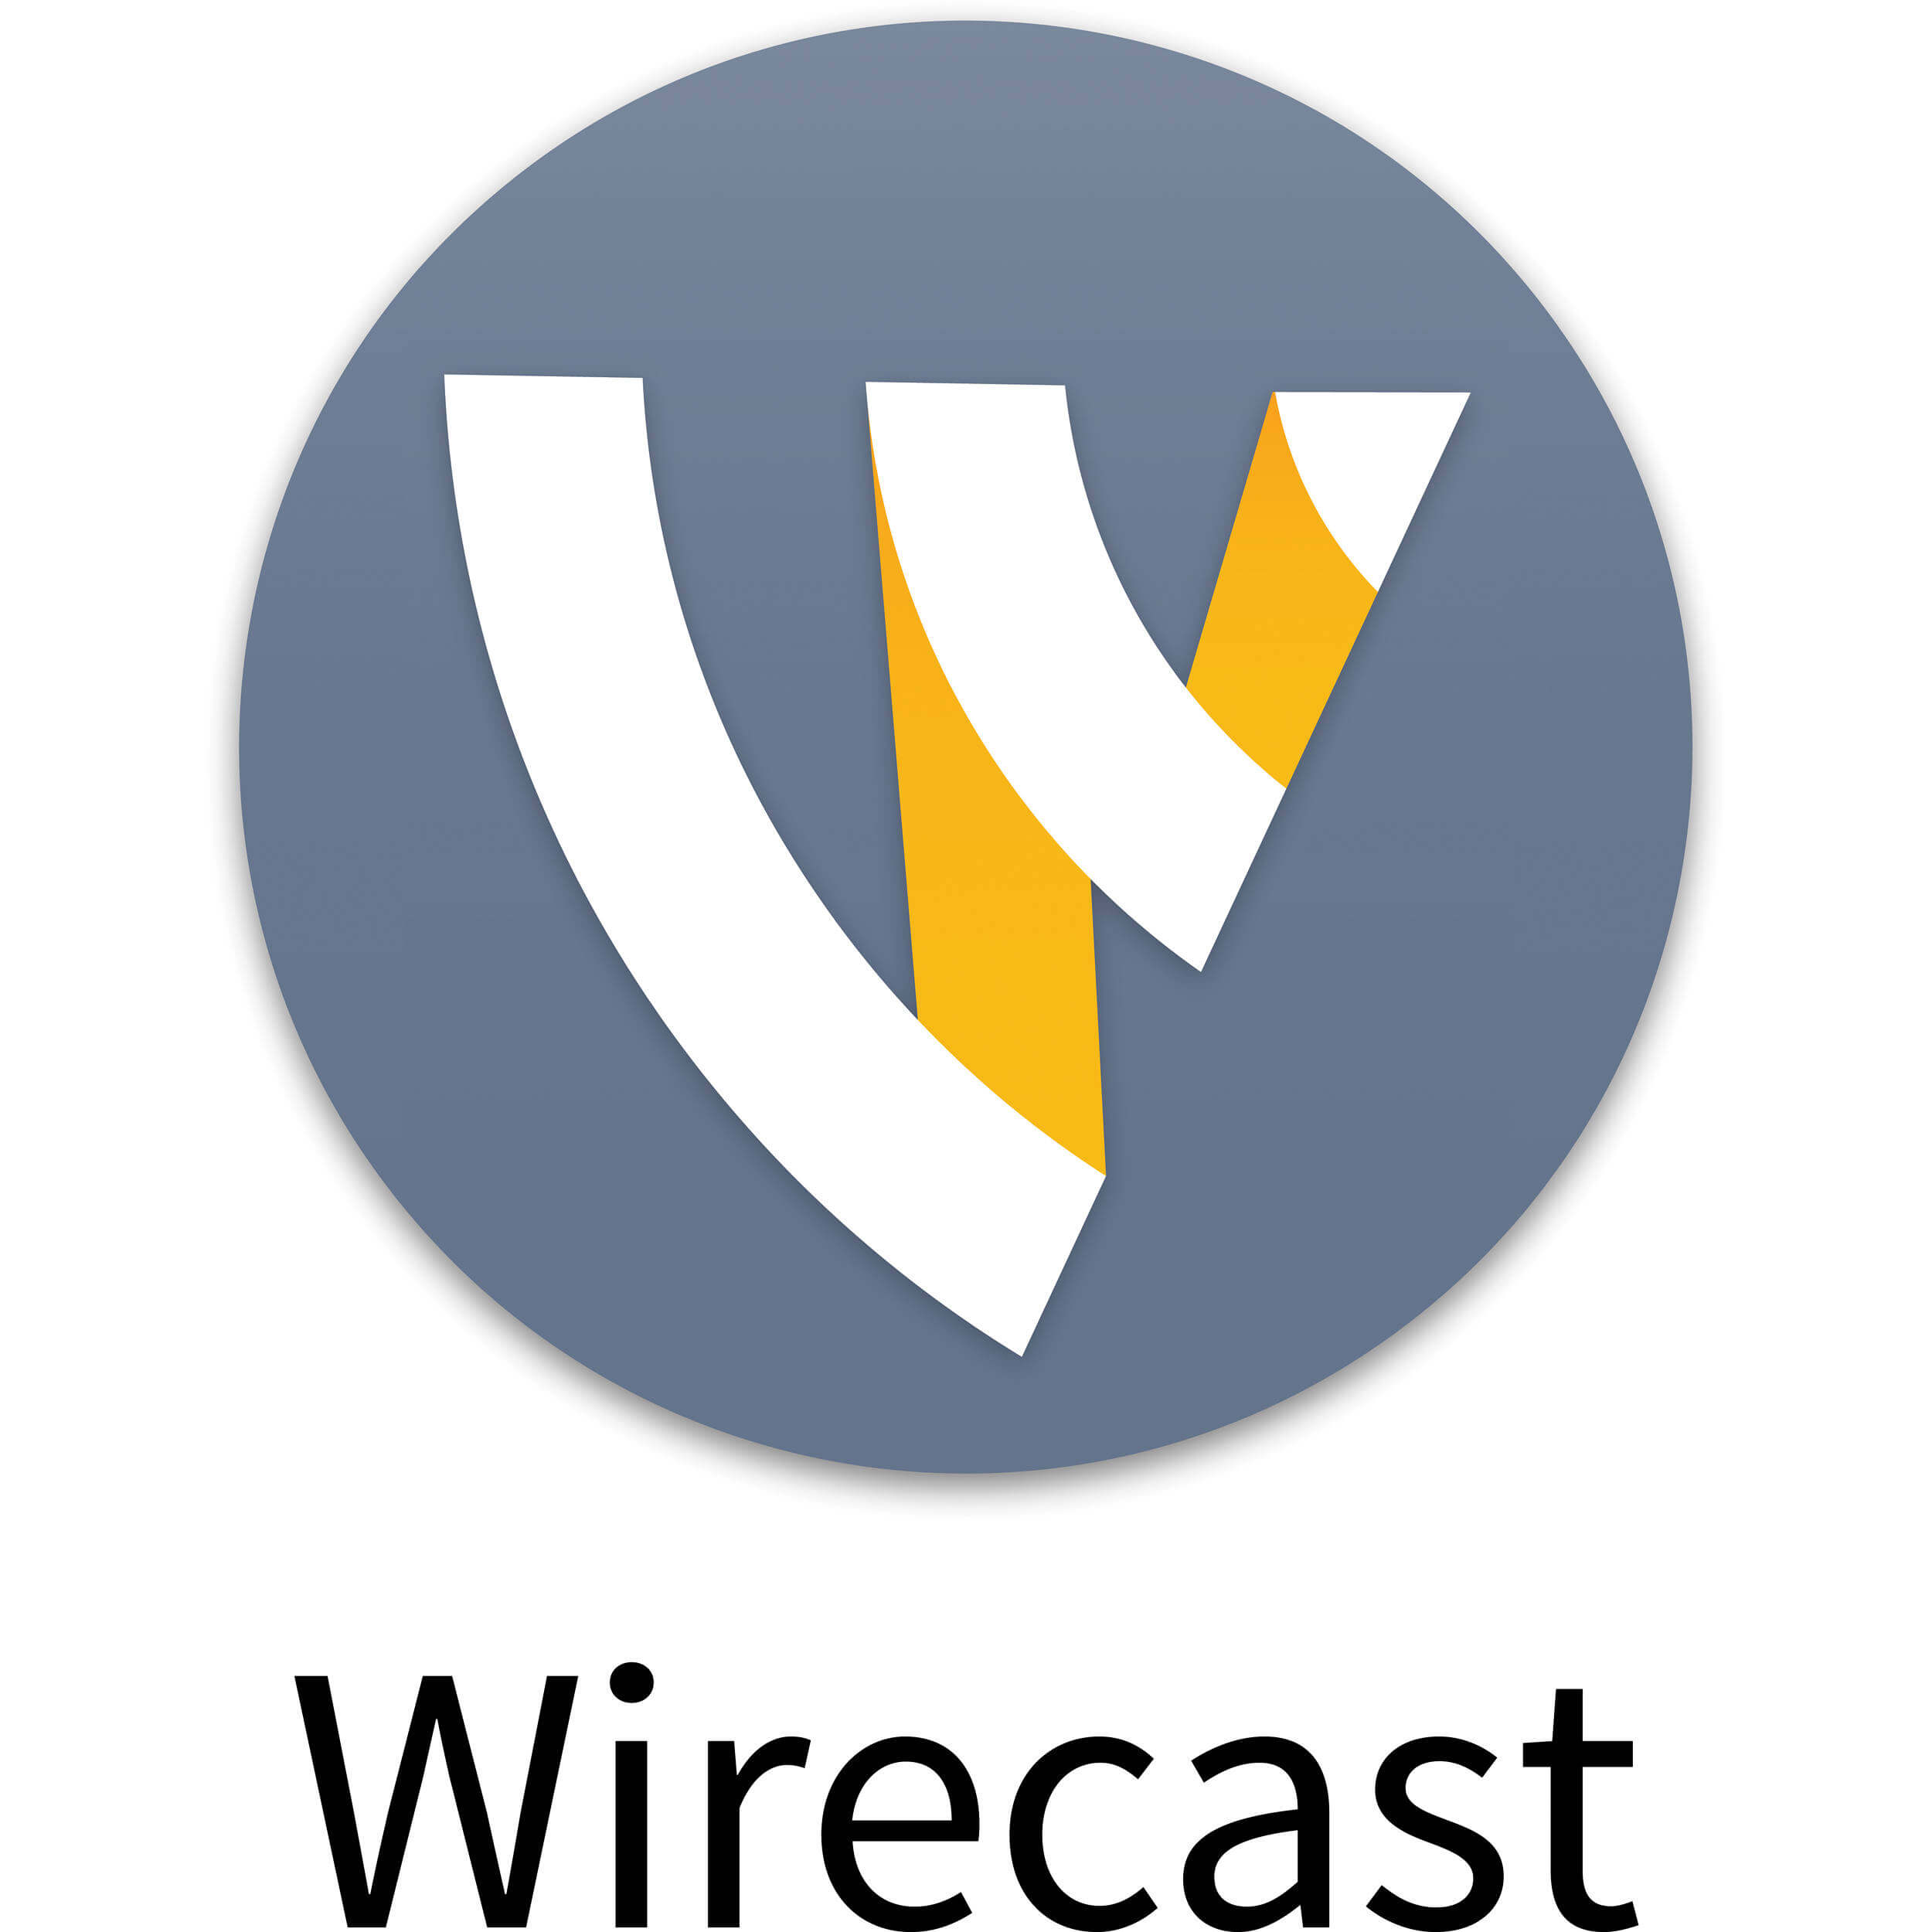 Wirecast Pro 14.2.1 Crack + Serial Key Free Download [2021]